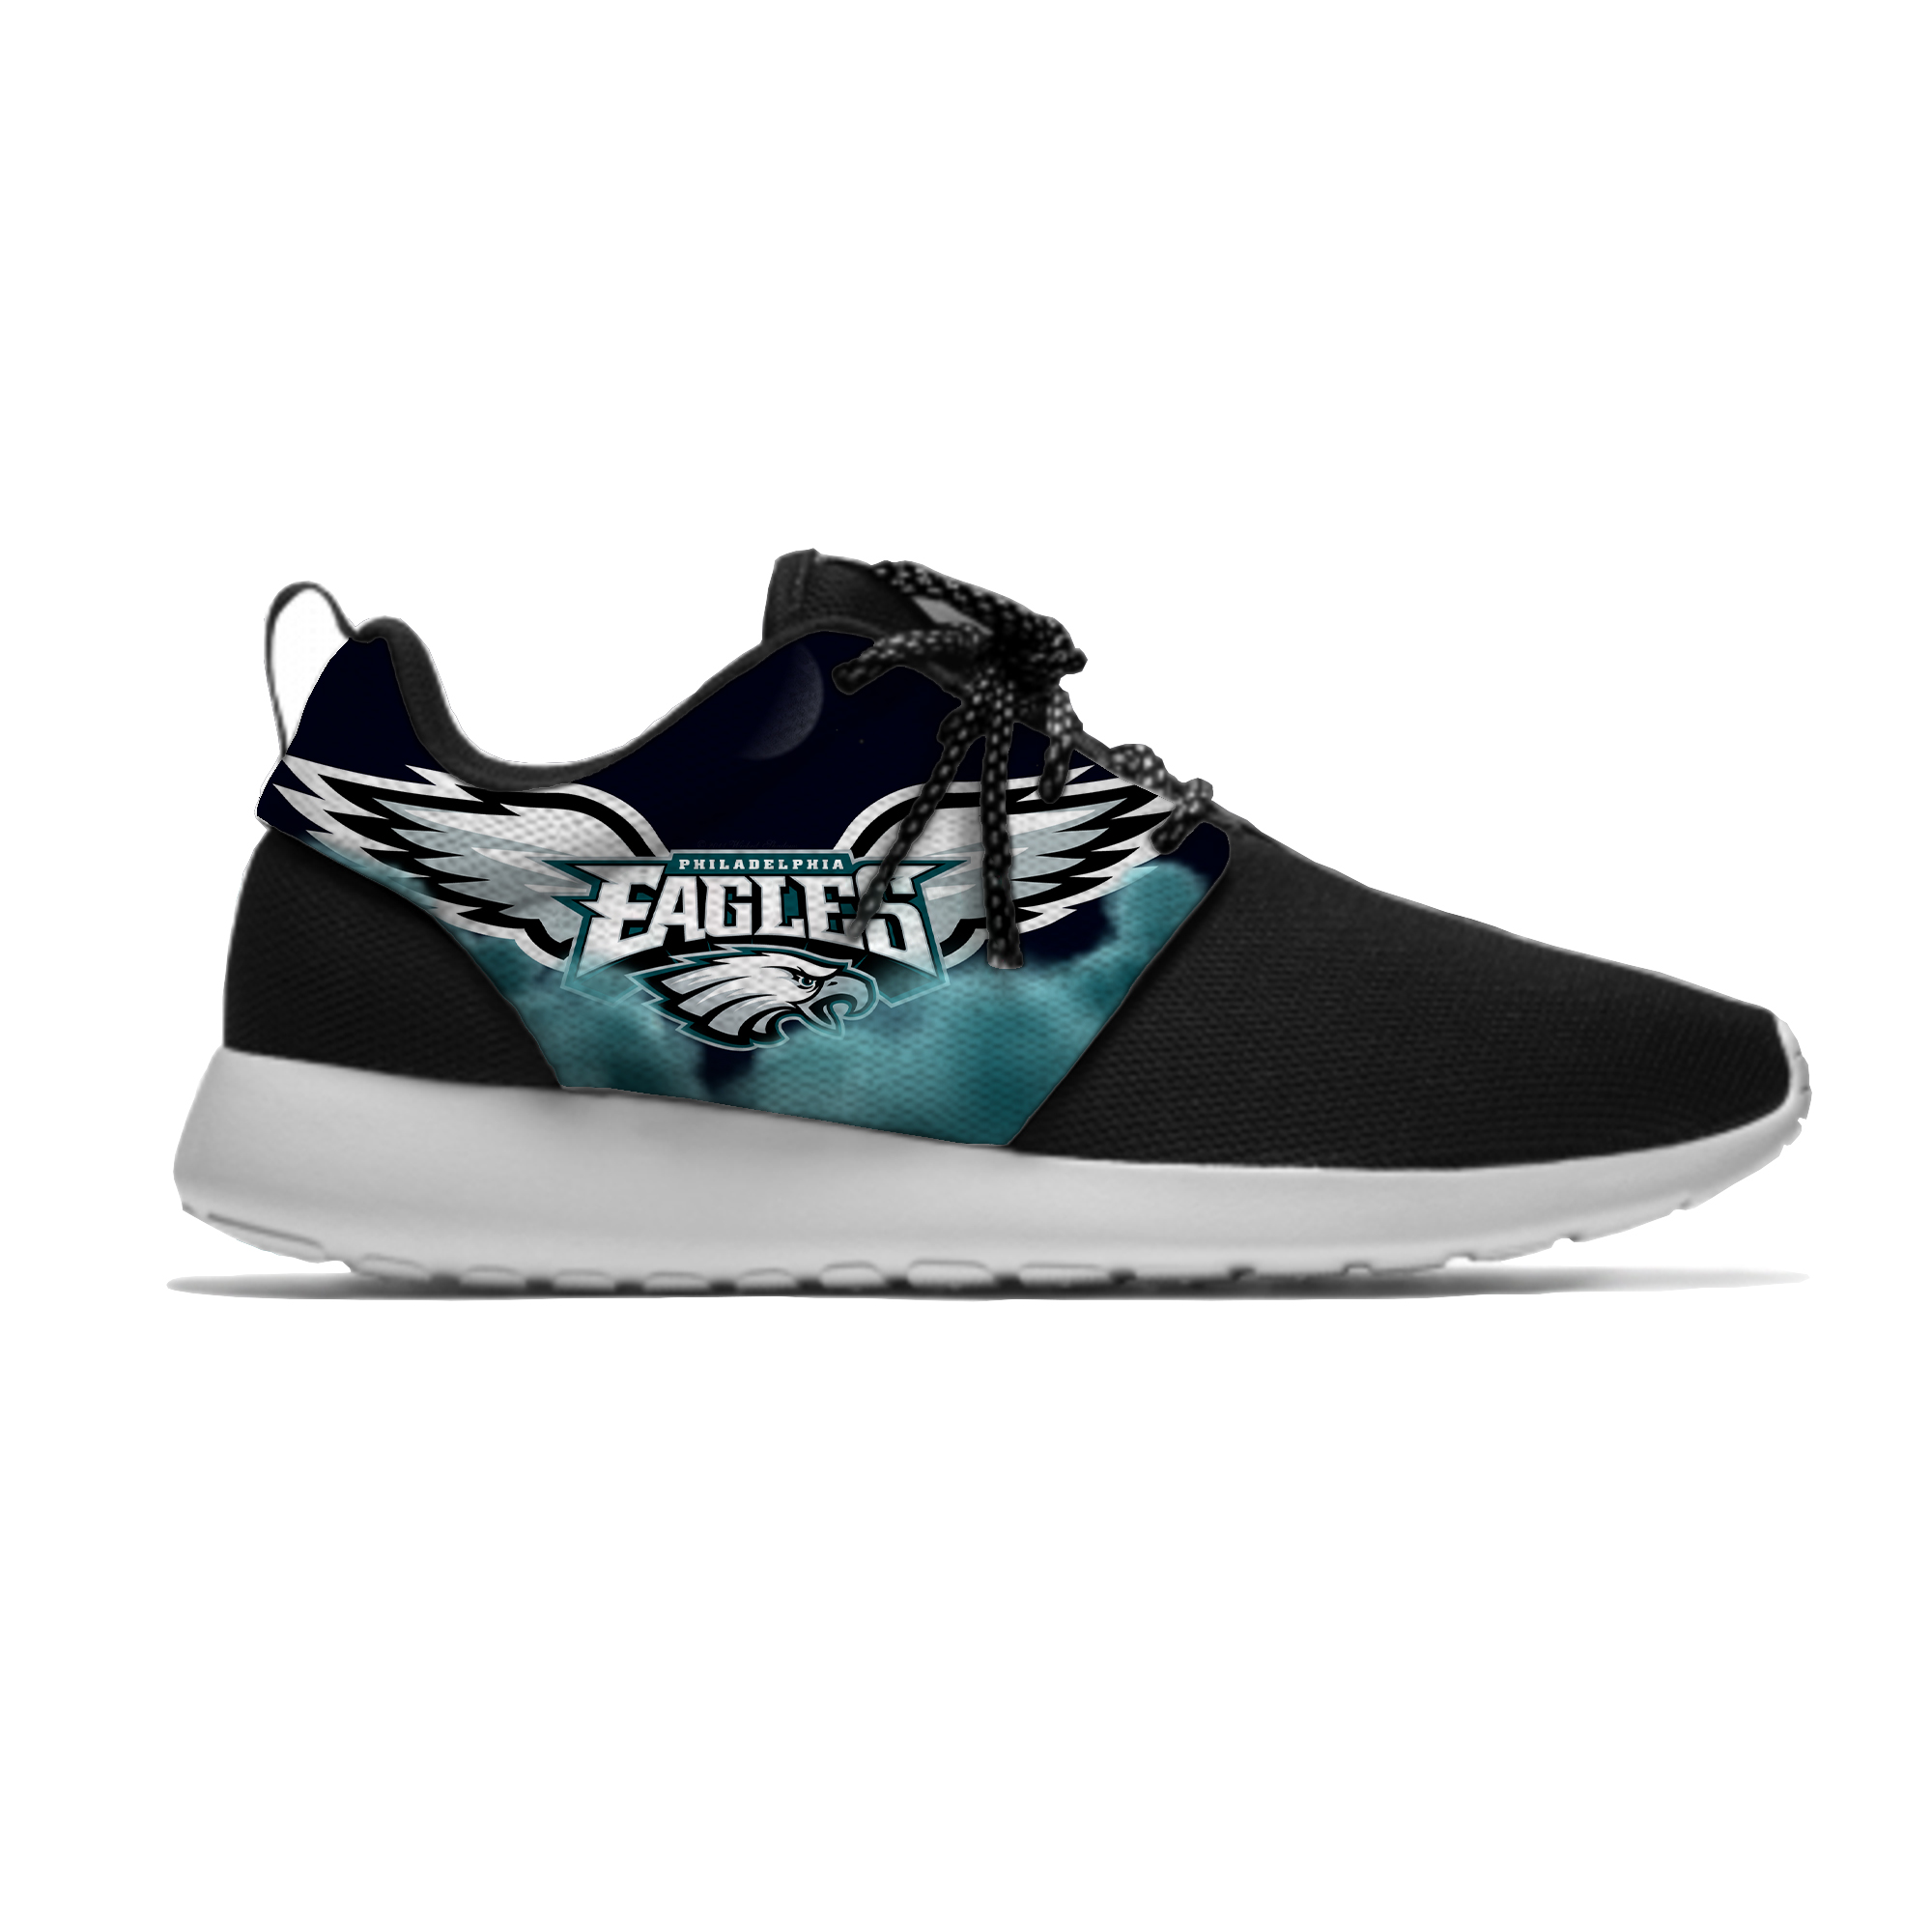 Eagles Lightweight Men's/Women's Philadelphia Running Shoes Football Sport Meshy Shoes Casual  Breathable Sneakers